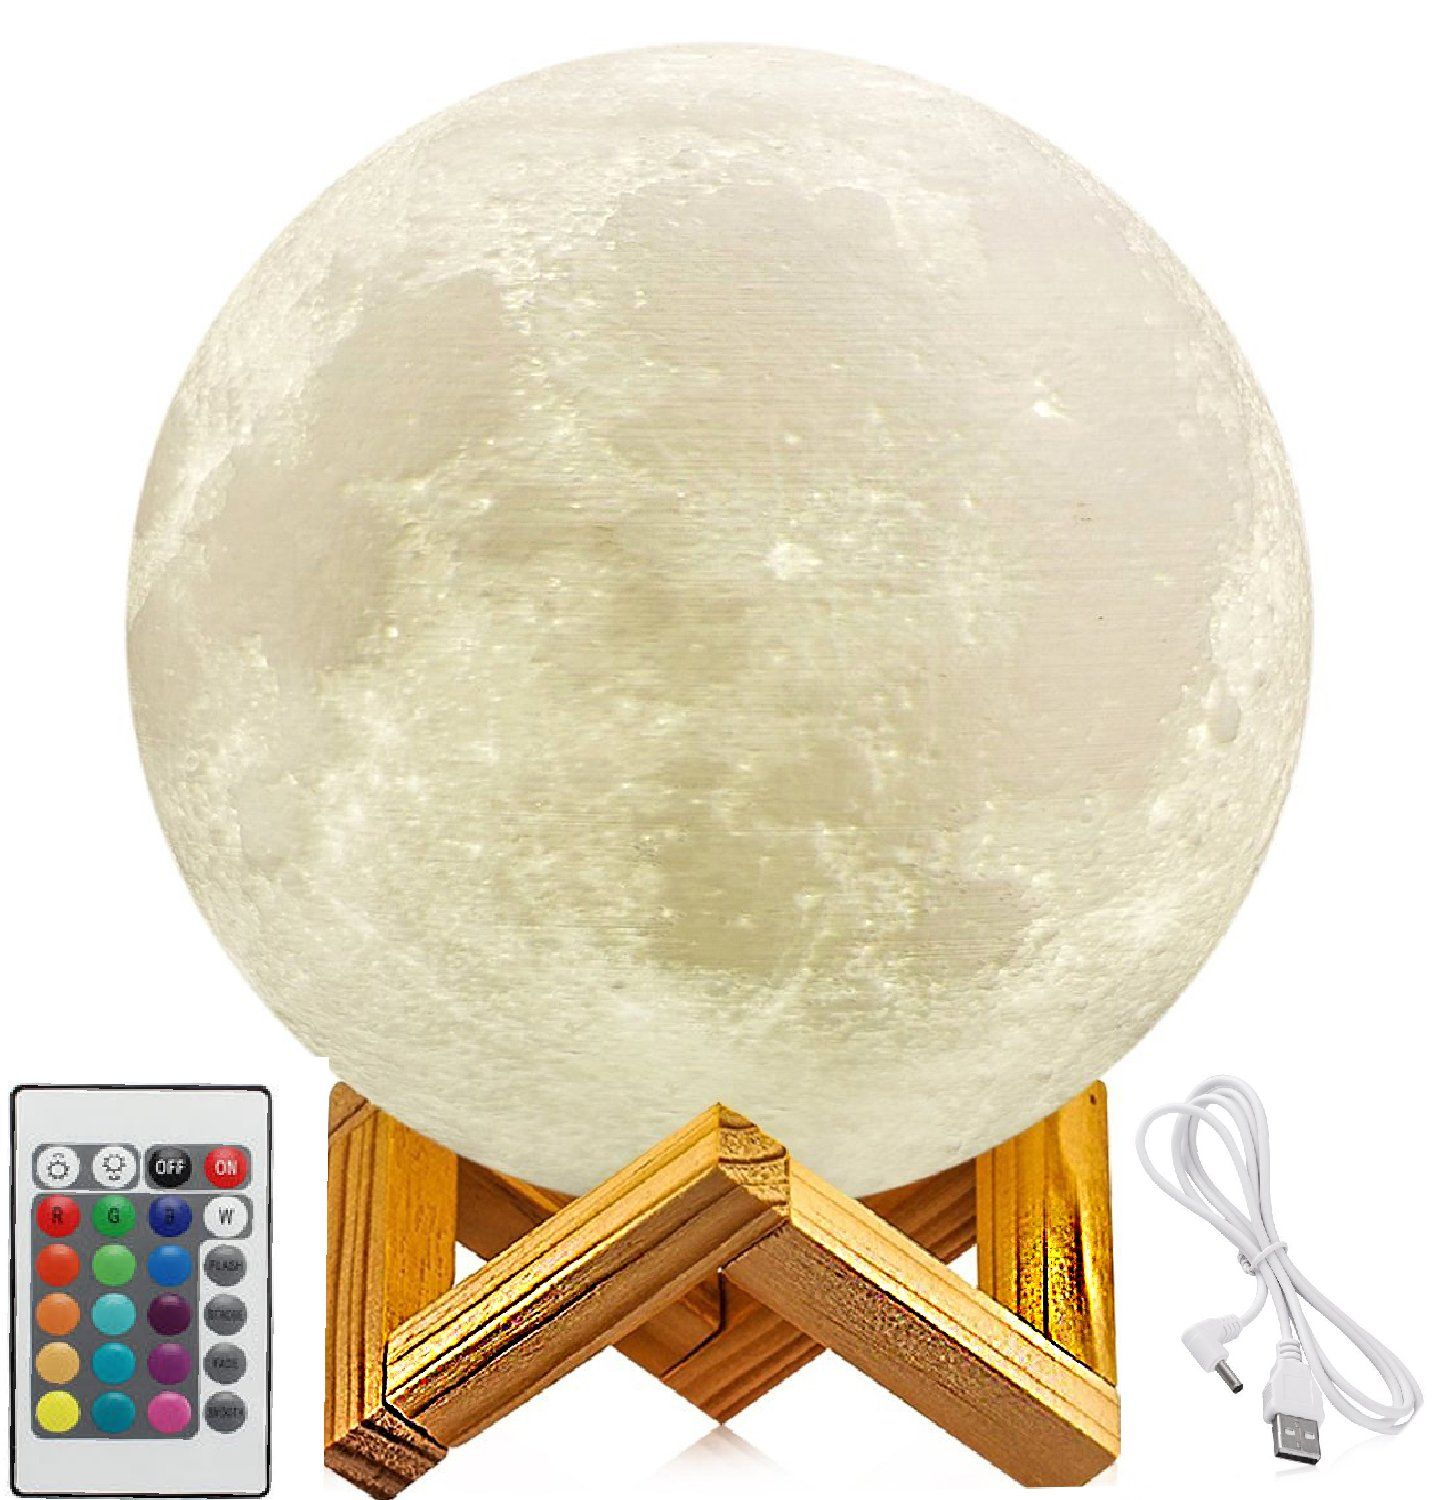 5 9 Inch Full Moon Lamp 3d Moon Lamp 100 3d Printing Led 16 Colors Moon Lamp Touch Remote Control D With Images Best Baby Night Light Moon Light Lamp Night Light Kids